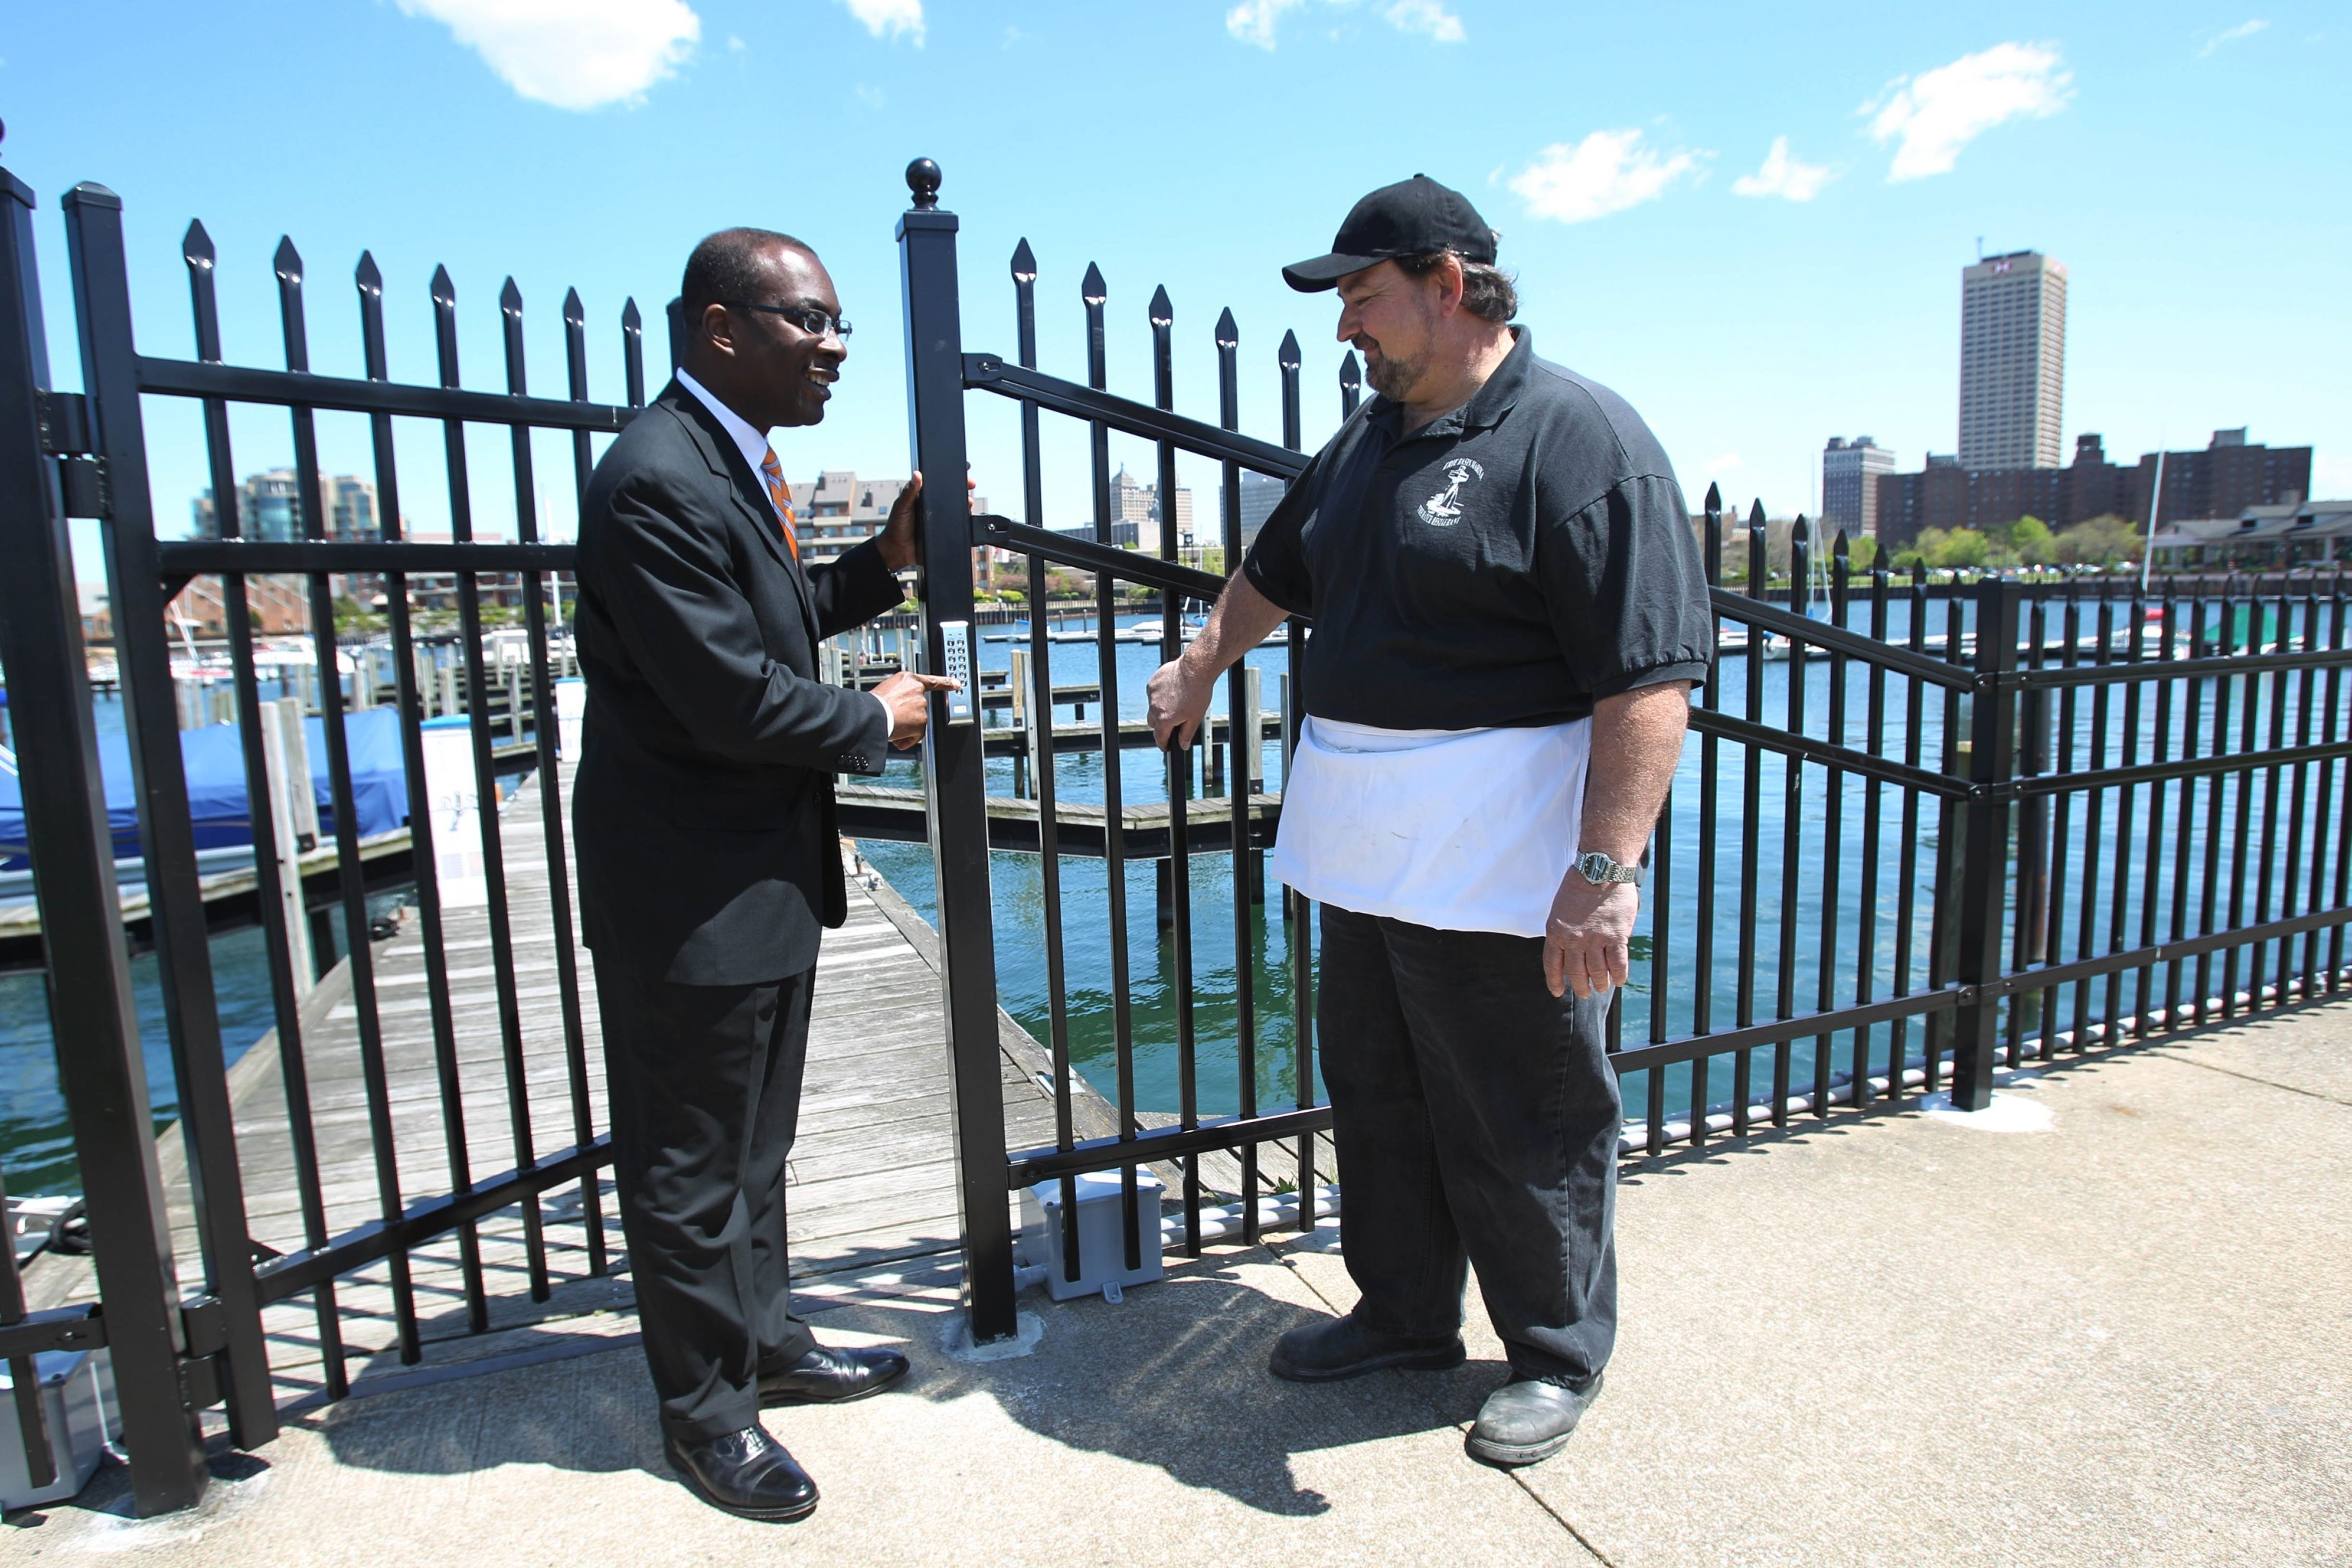 Sharon Cantillon/Buffalo News file photo    Mayor Byron W. Brown, who says this summer was the Hatch Restaurant's best ever, meets with Michael Wolasz, operations director for Erie Basin Marina.